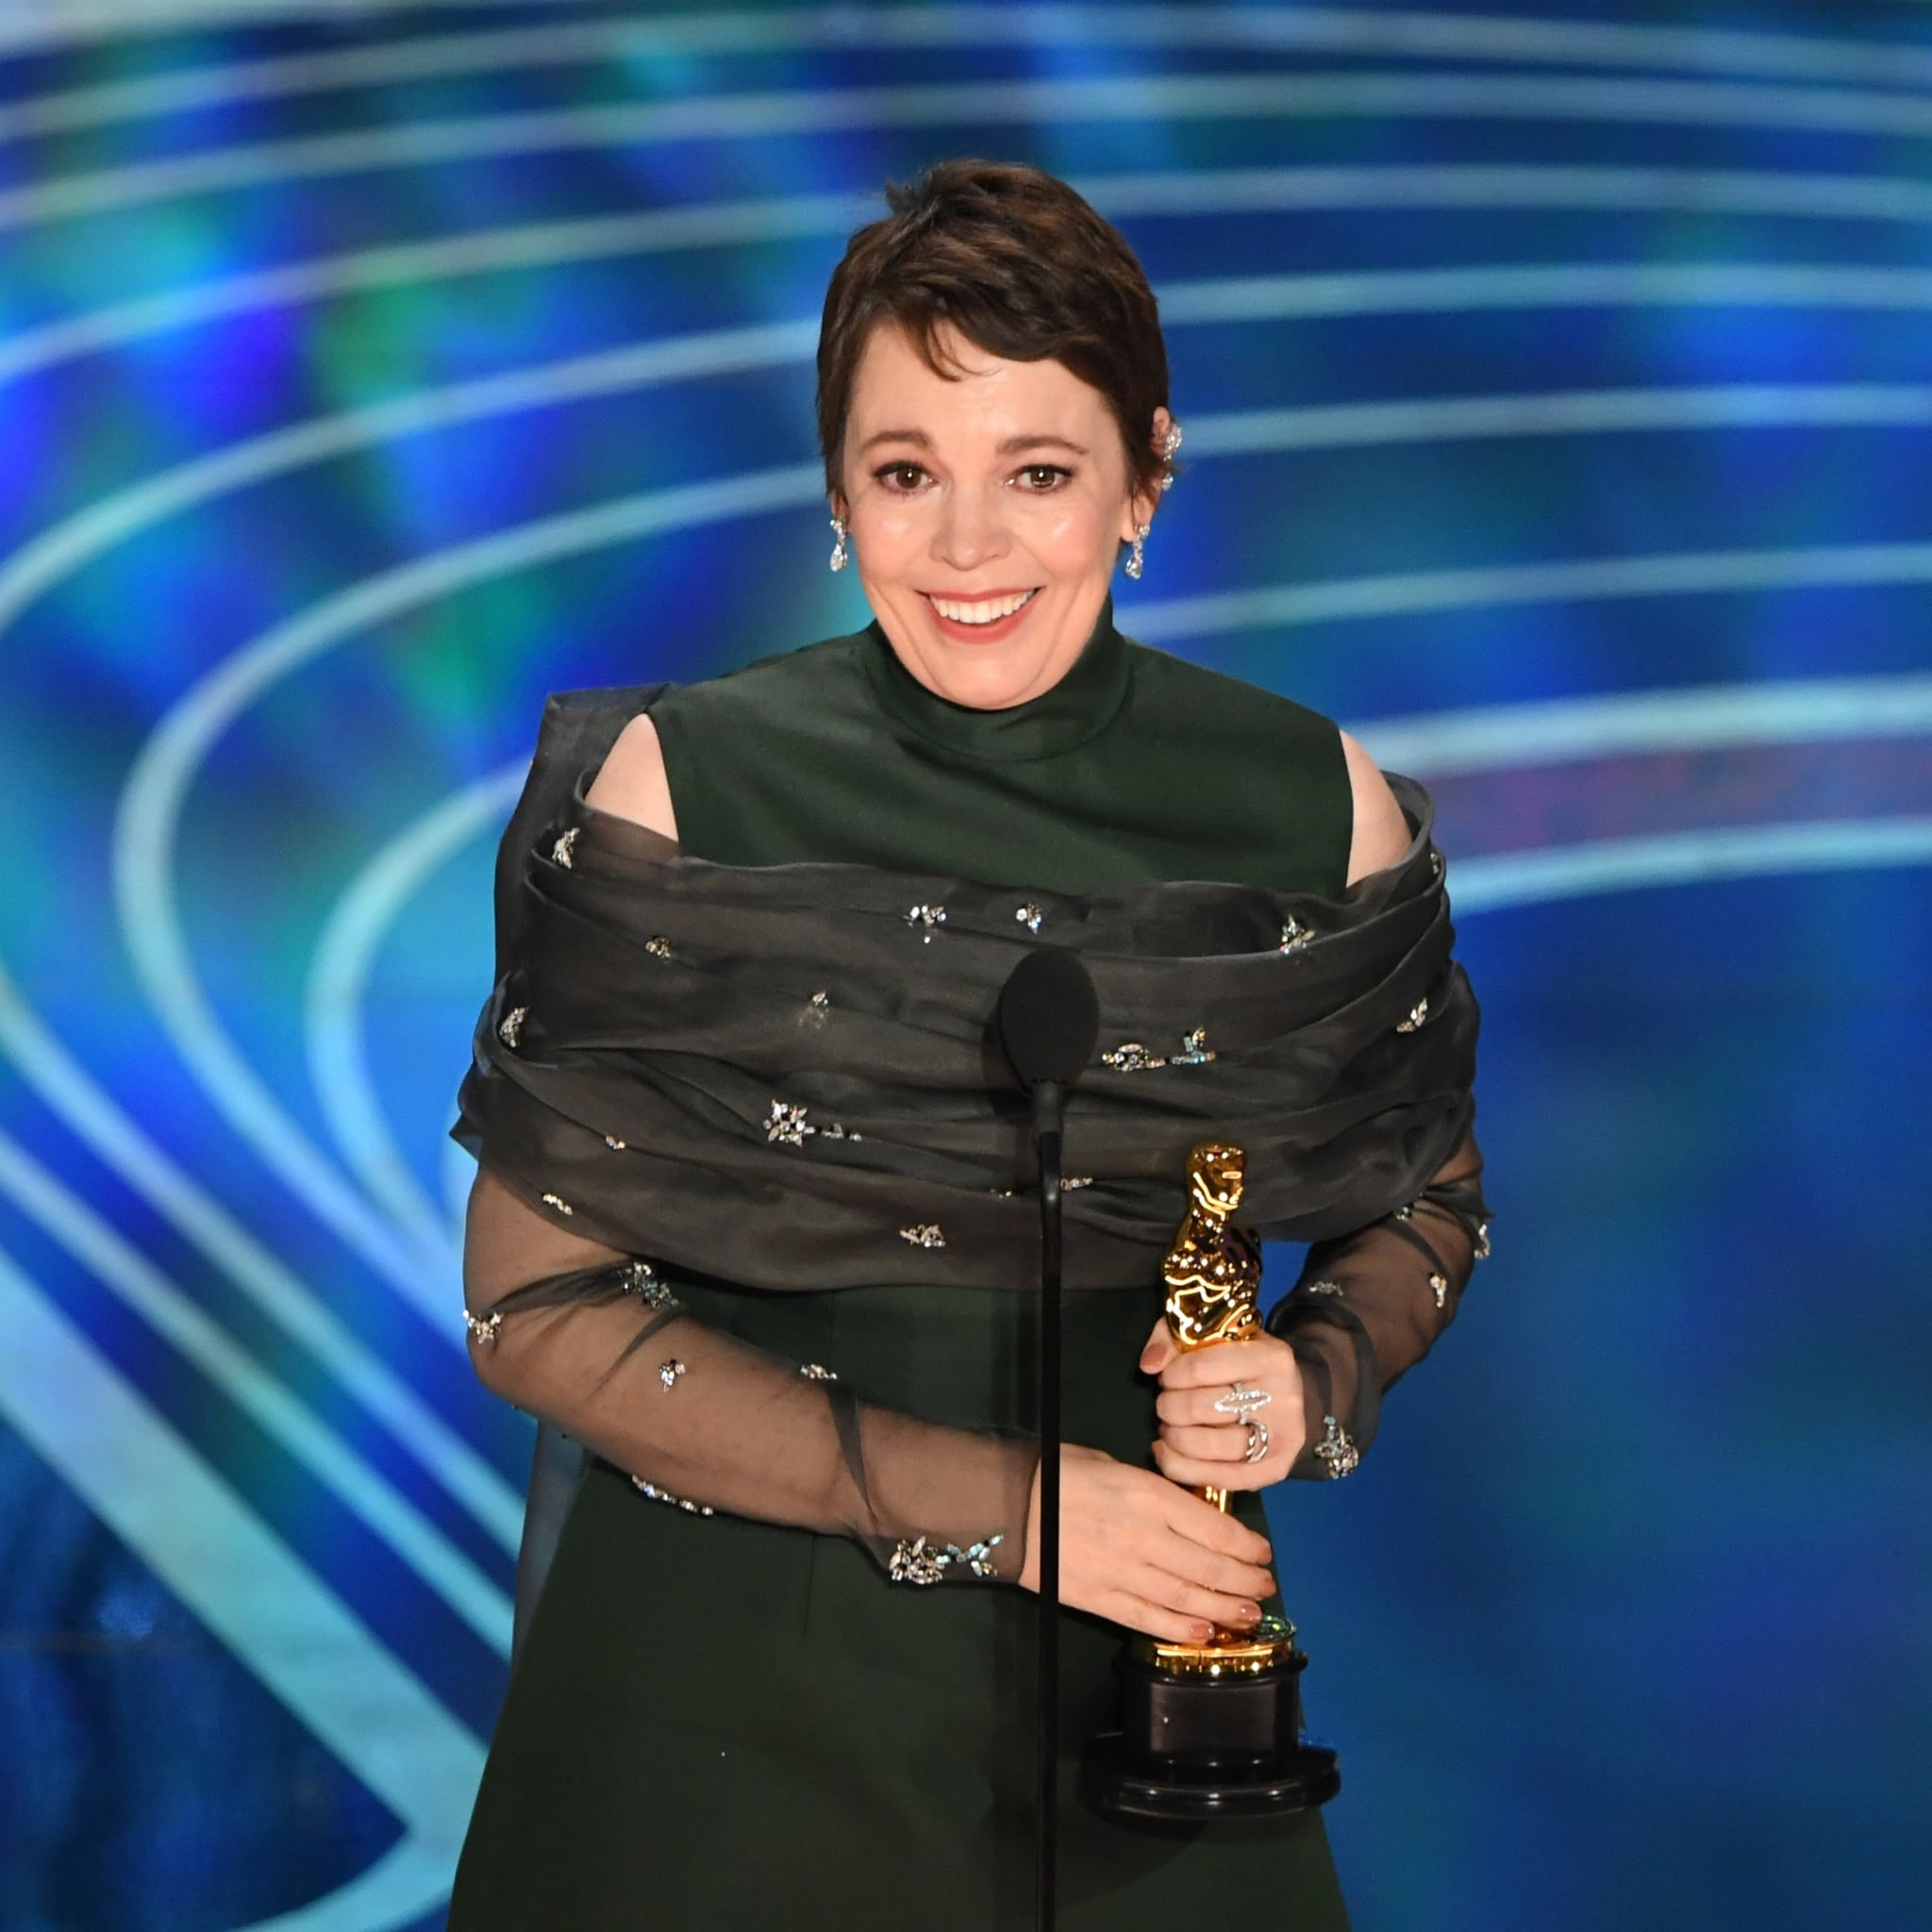 Olivia-Colman-2019-Oscars-Acceptance-Speech-Video.jpg